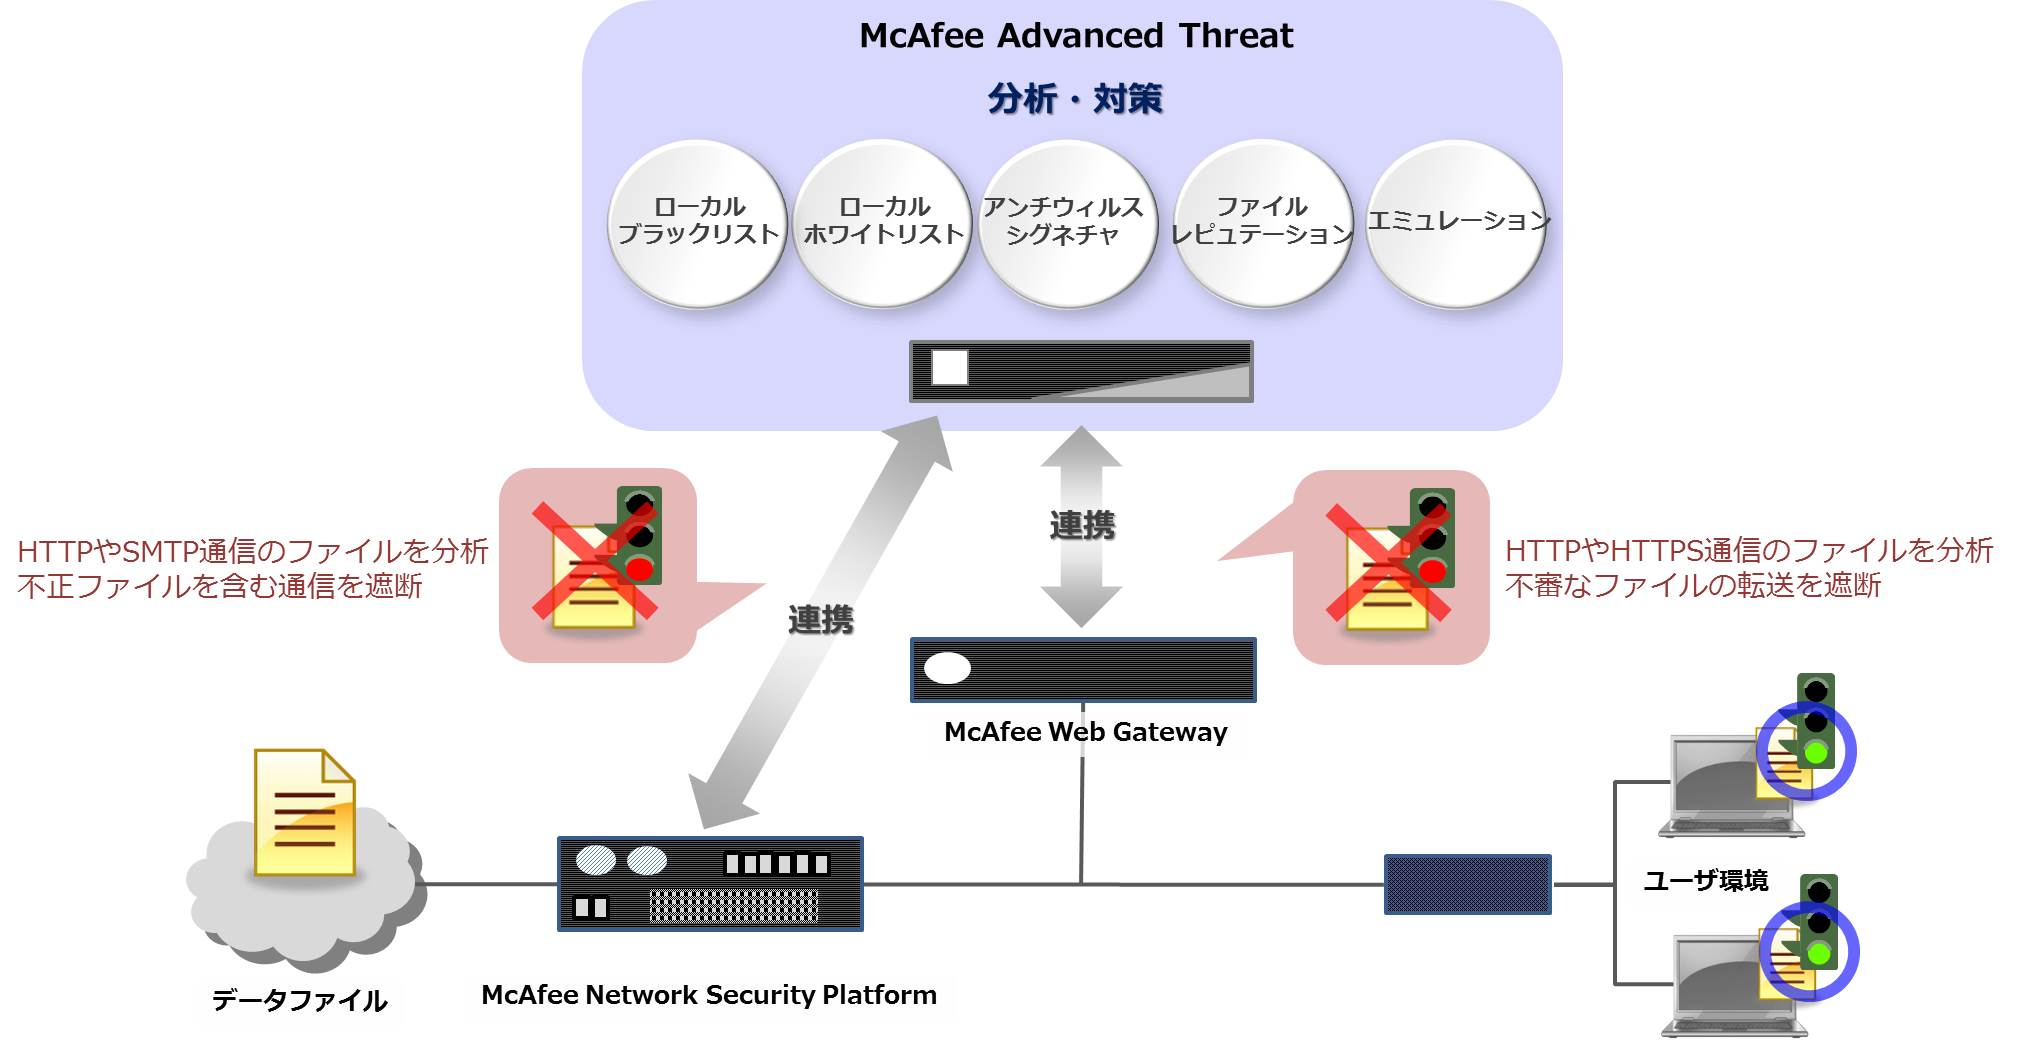 McAfee Advanced Threat Defense